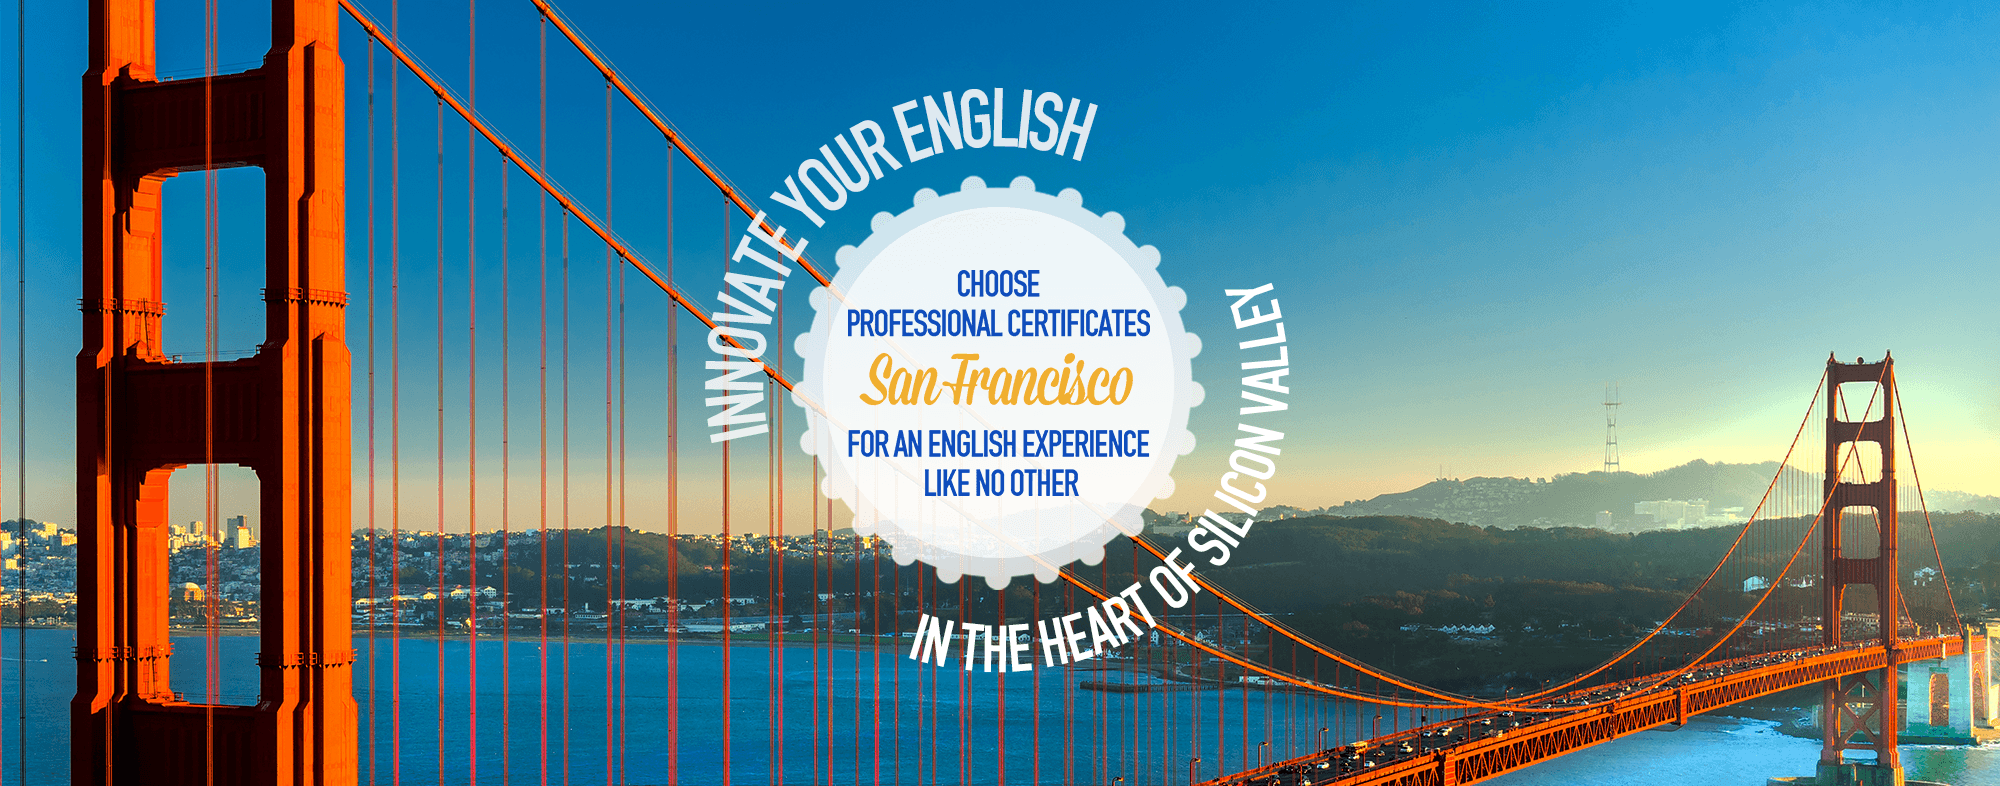 San Francisco Professional Certificates 2019